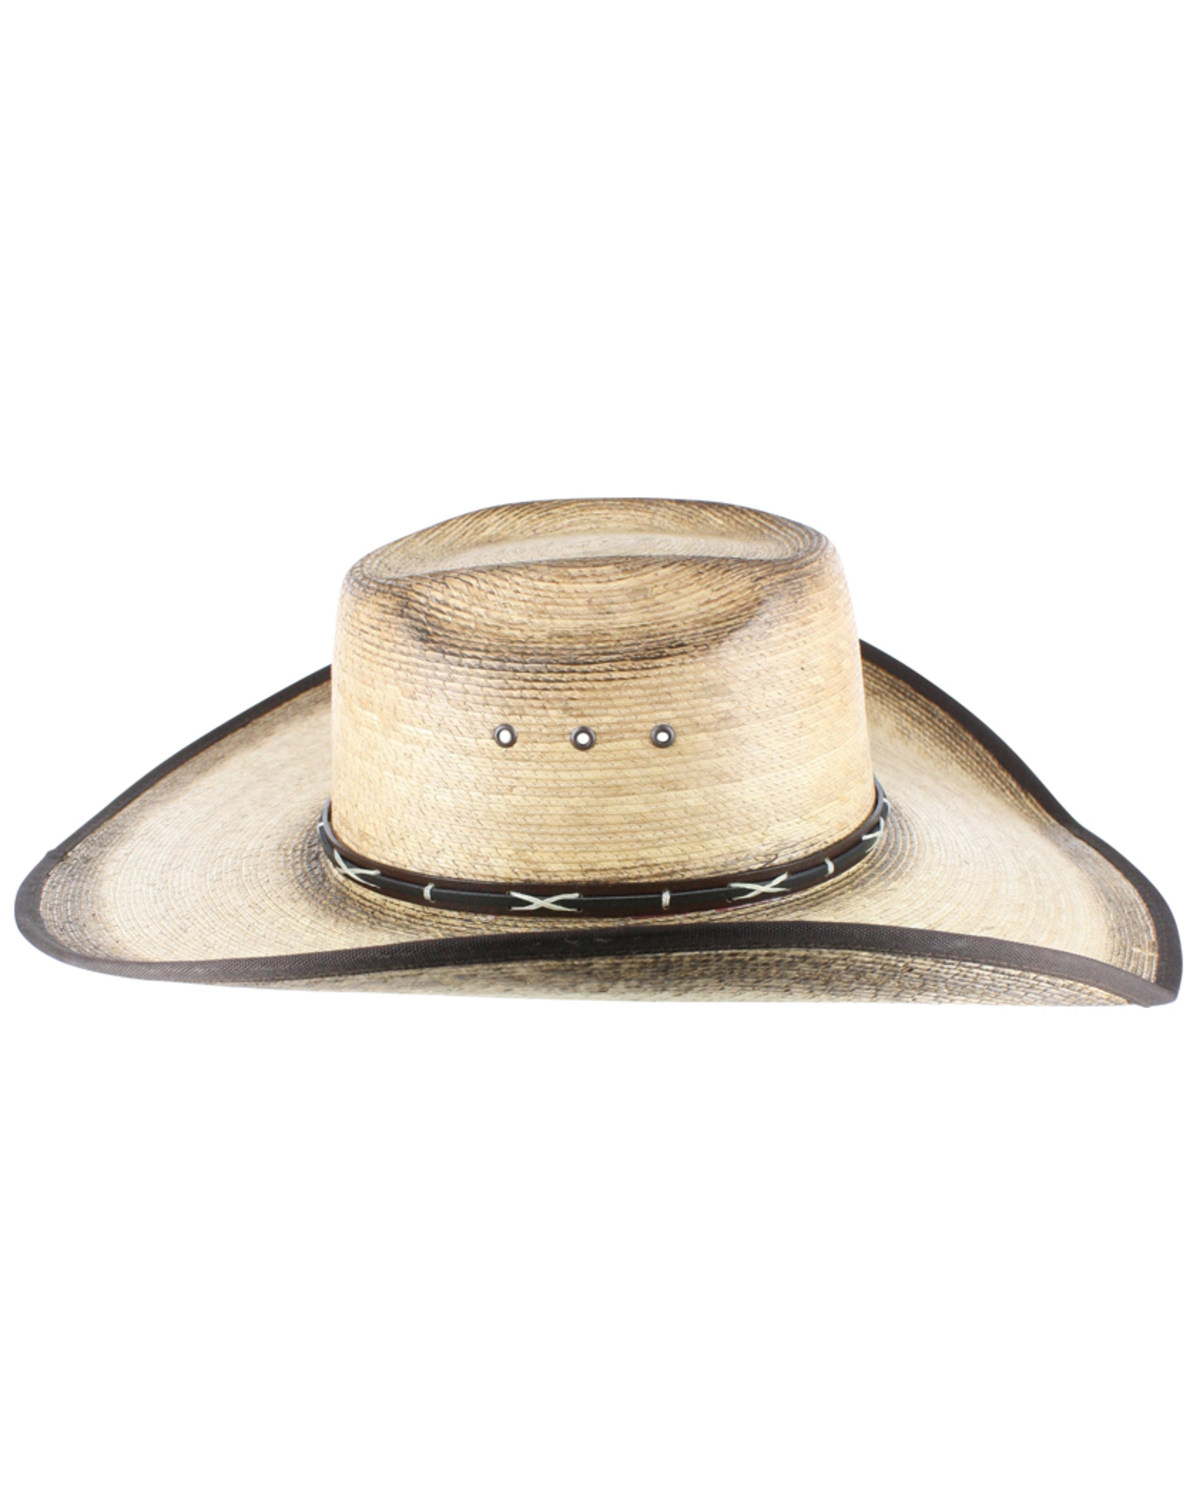 Bill Cody was a true legend in his own time who inspired a love for the 19th Century American West around the World. Our great looking Buffalo Bill Cody Commemorative Hat has a 4 1/4 inch crown with a 3 3/4 inch, kettle curled and hand shaped brim. continued Purchase one of our fine beaver-blend hand made cowboy hats and you will receive the same quality and workmanship that is worn by more.